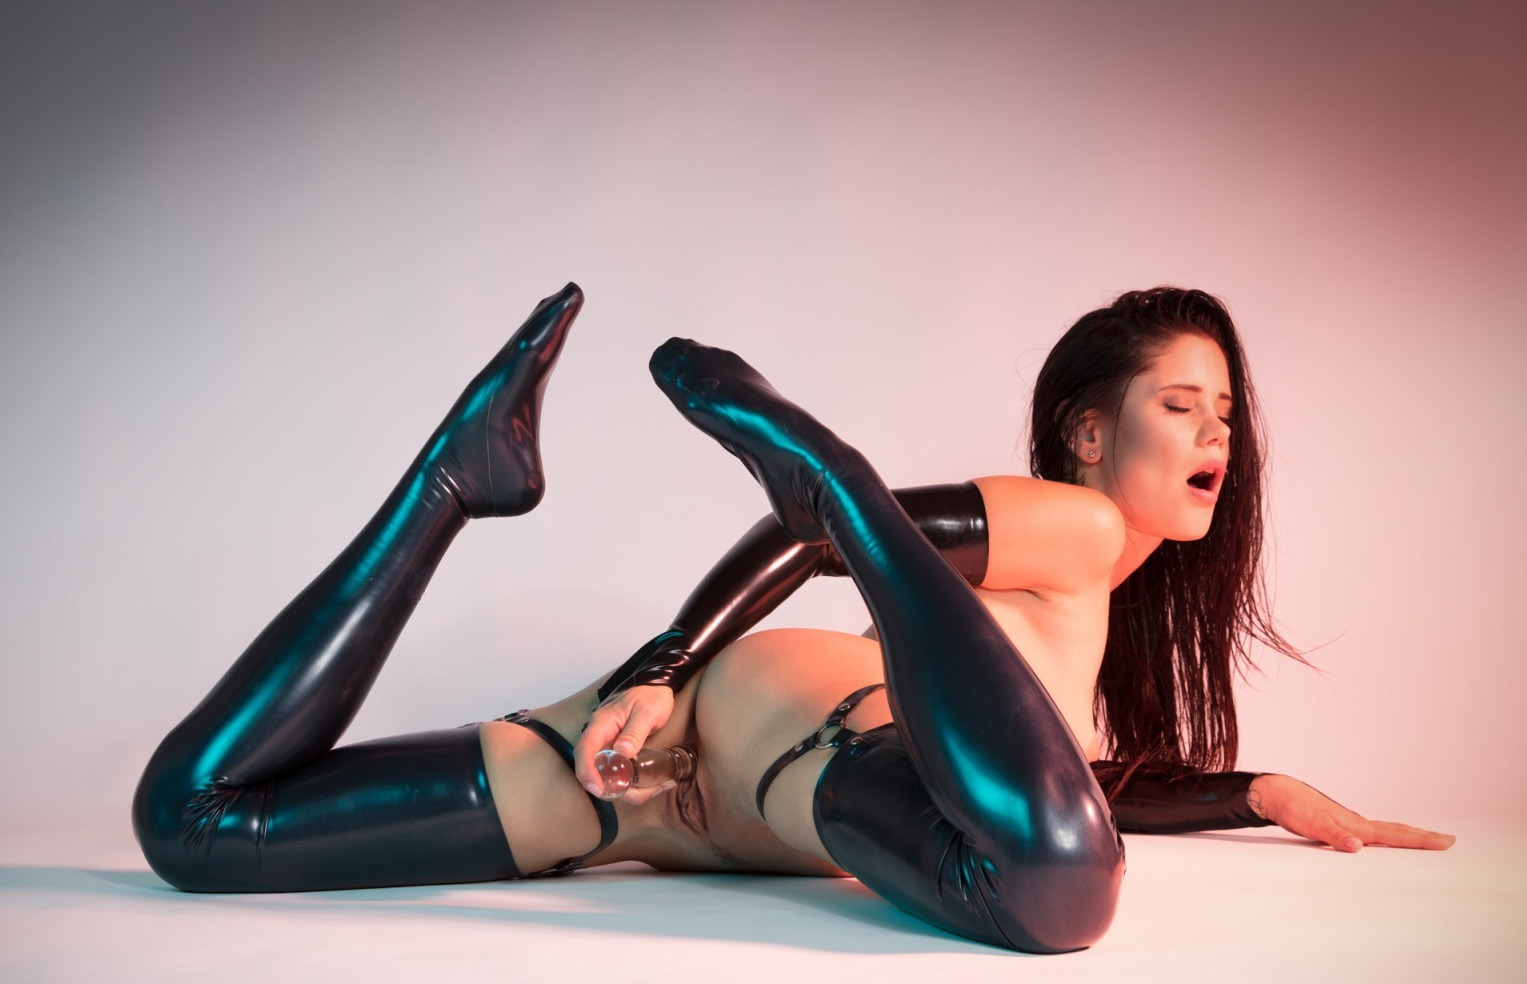 Caprice Divas – The colour of Latex